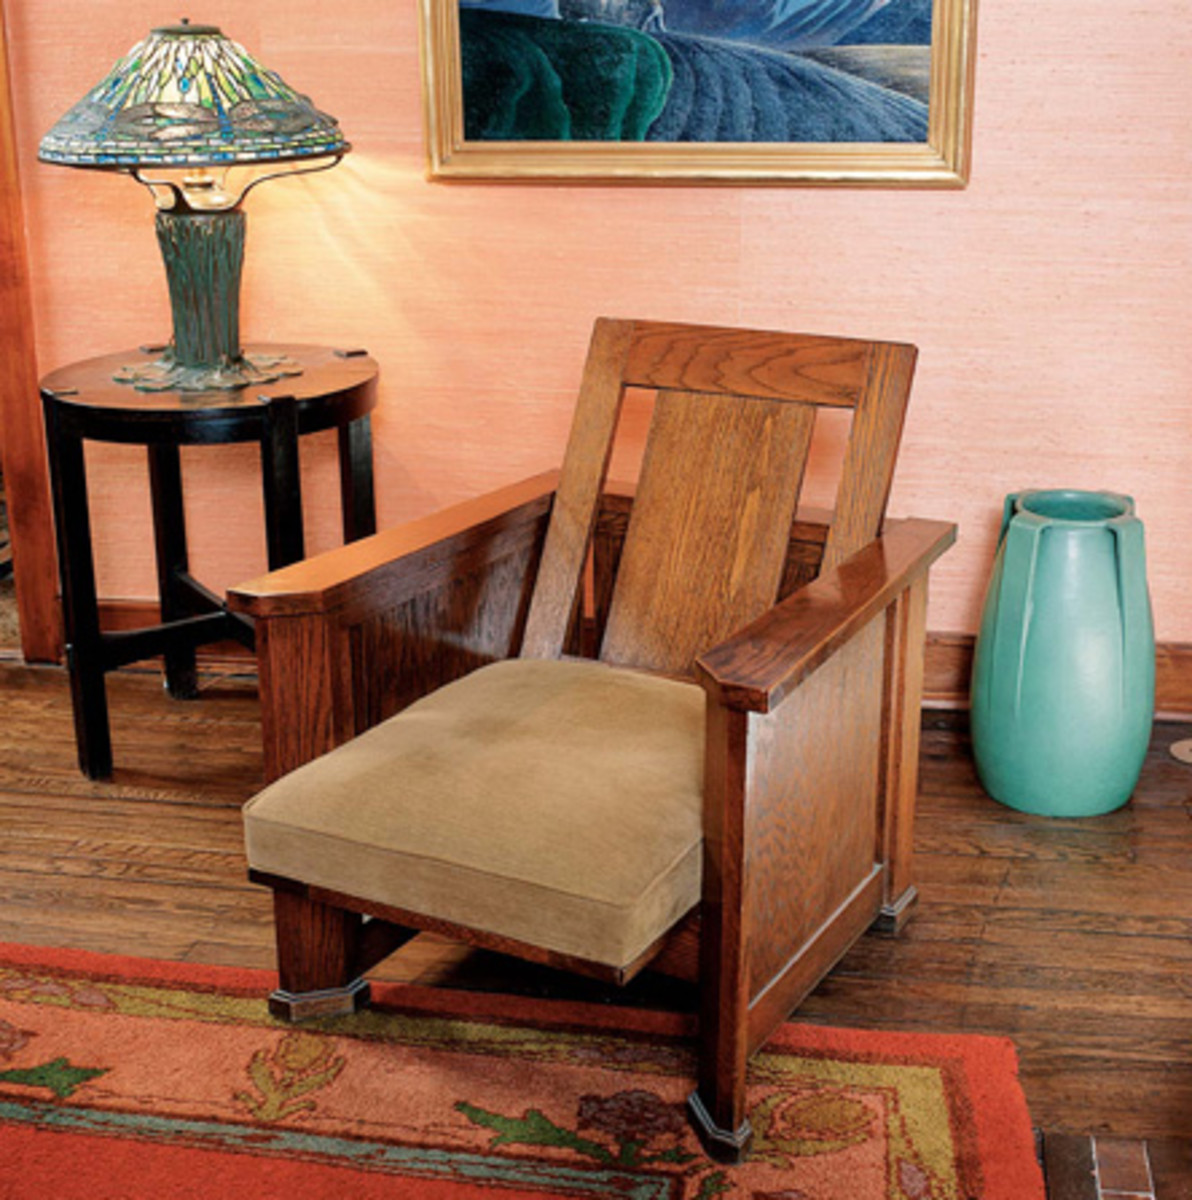 morris chairs for sale best posture chair uk evolution of the design arts crafts house frank lloyd wright s version translated to a prairie school